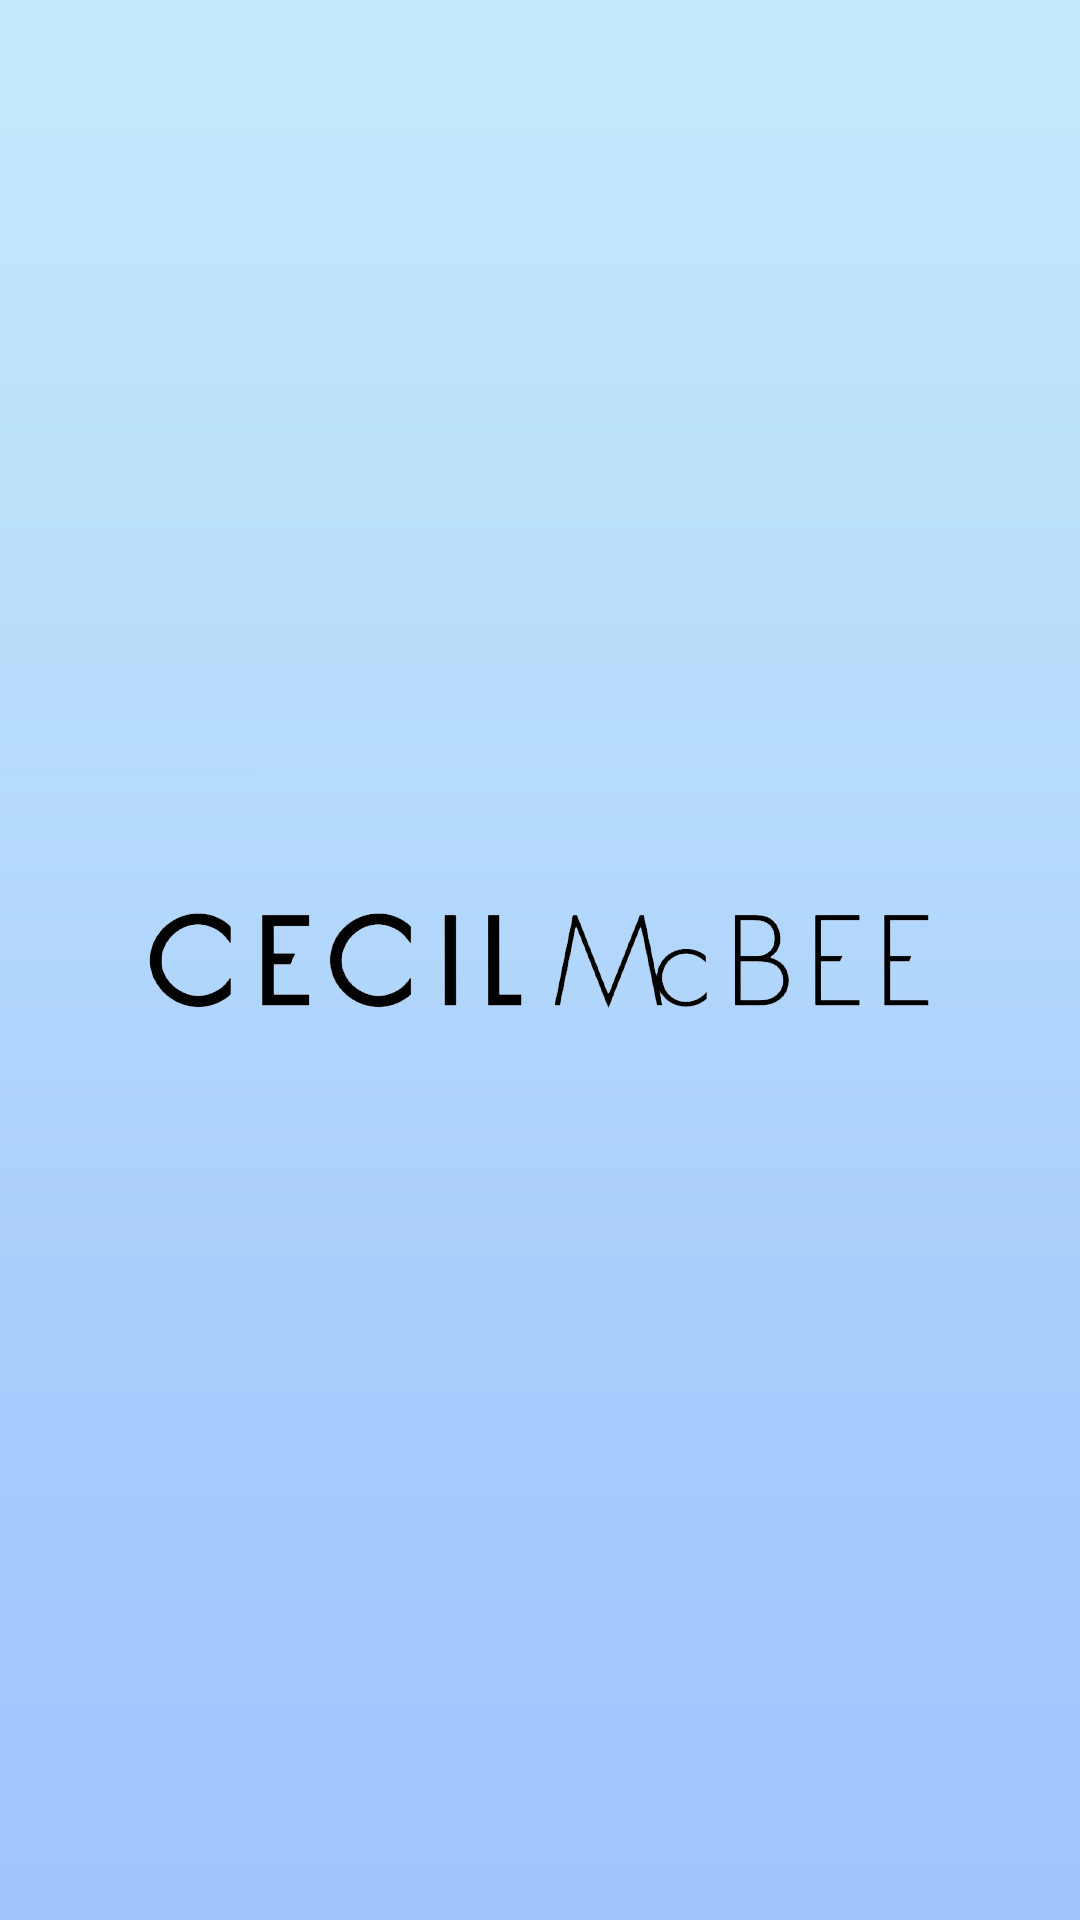 cecil00002 - セシルマクビー[CECIL McBEE]の高画質スマホ壁紙23枚 [iPhone&Androidに対応]